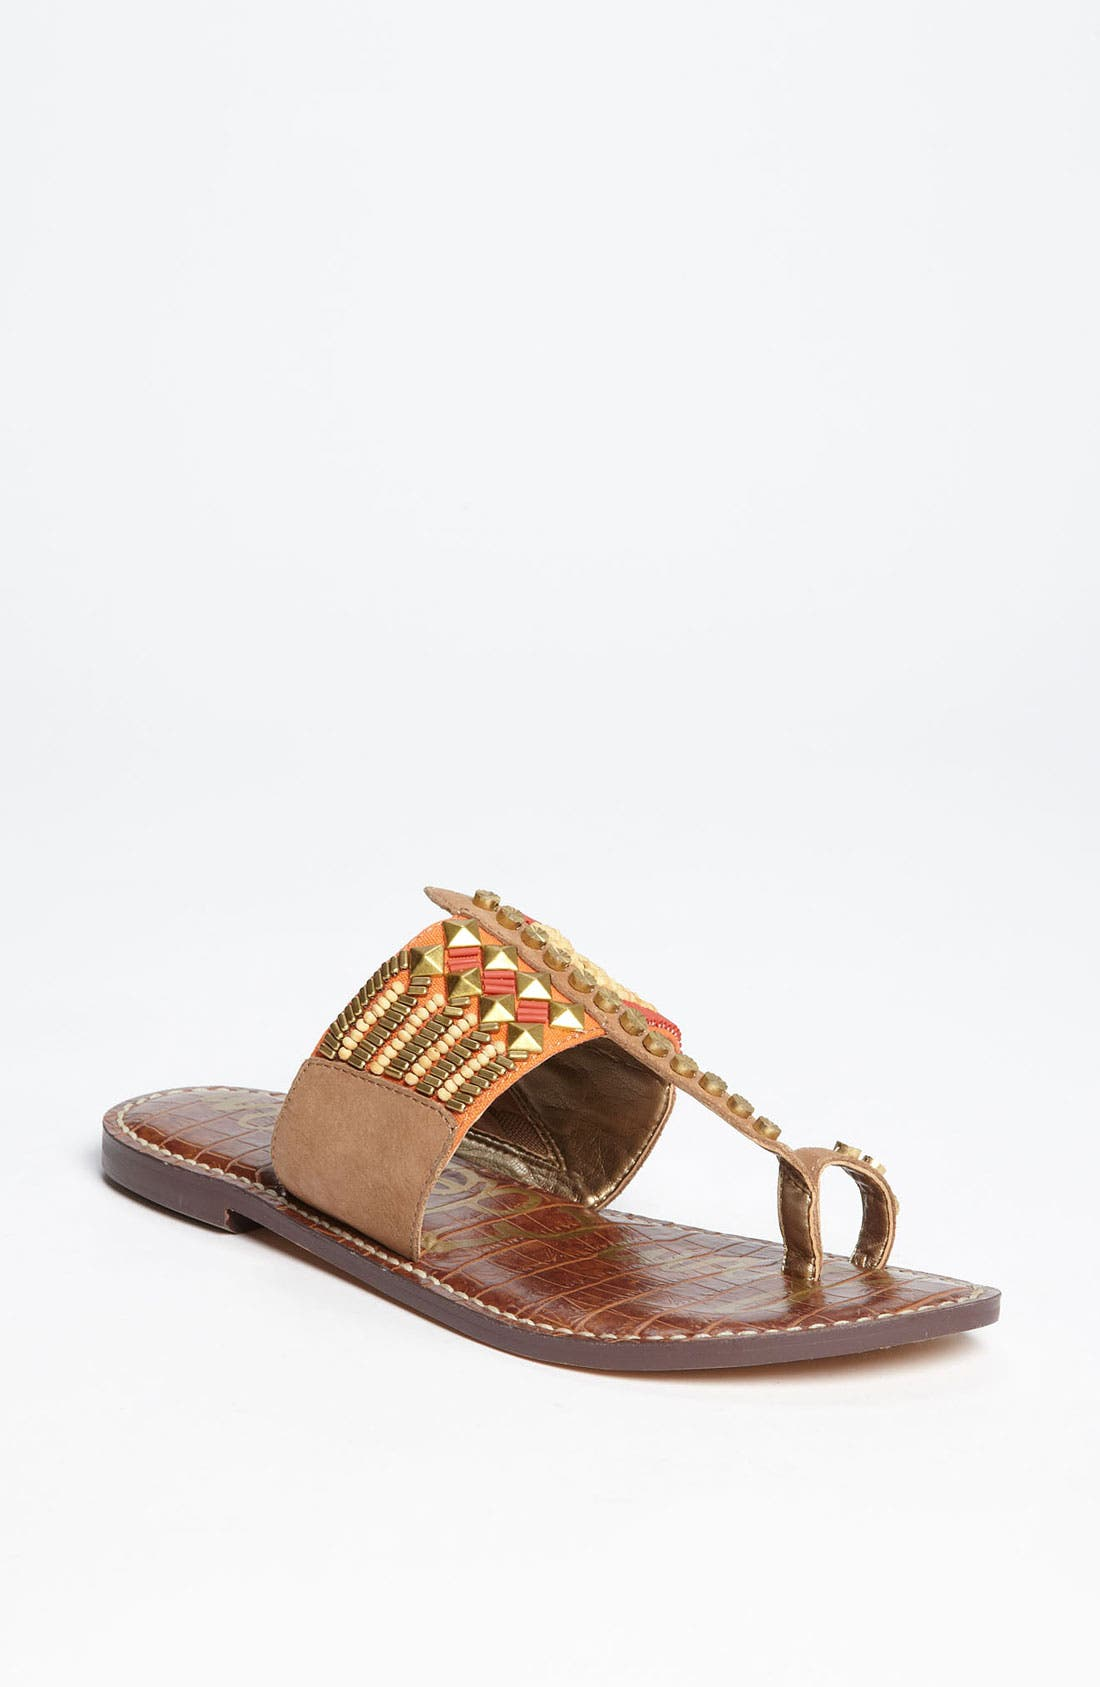 Alternate Image 1 Selected - Sam Edelman 'Gideon' Sandal